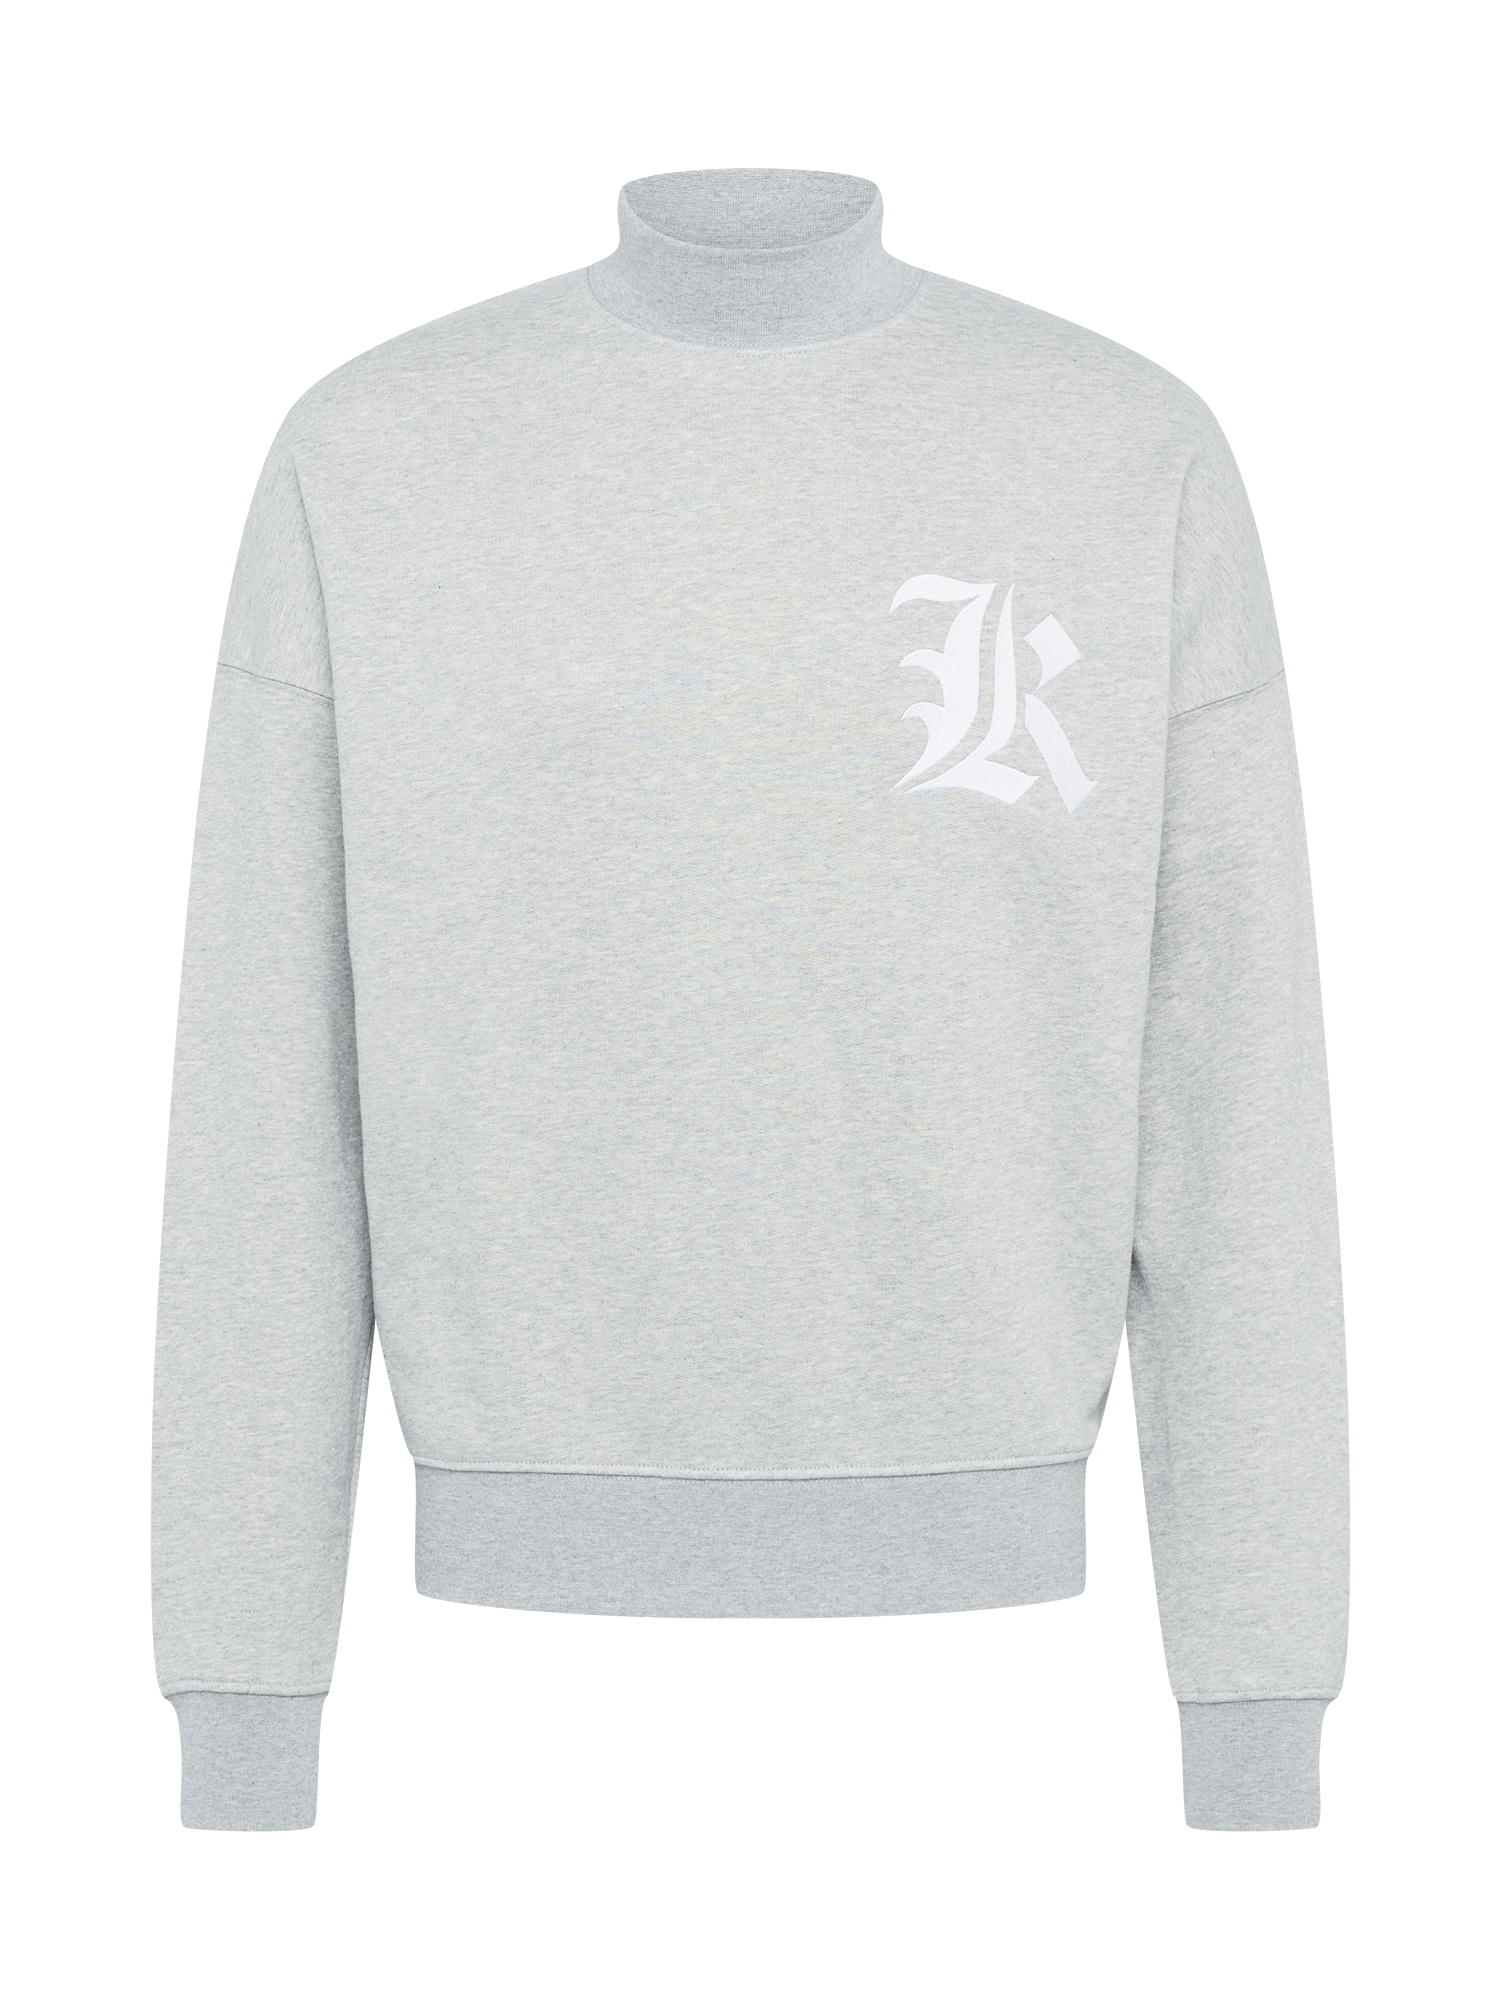 Mikina OV Crewneck K šedá ABOUT YOU x Mero